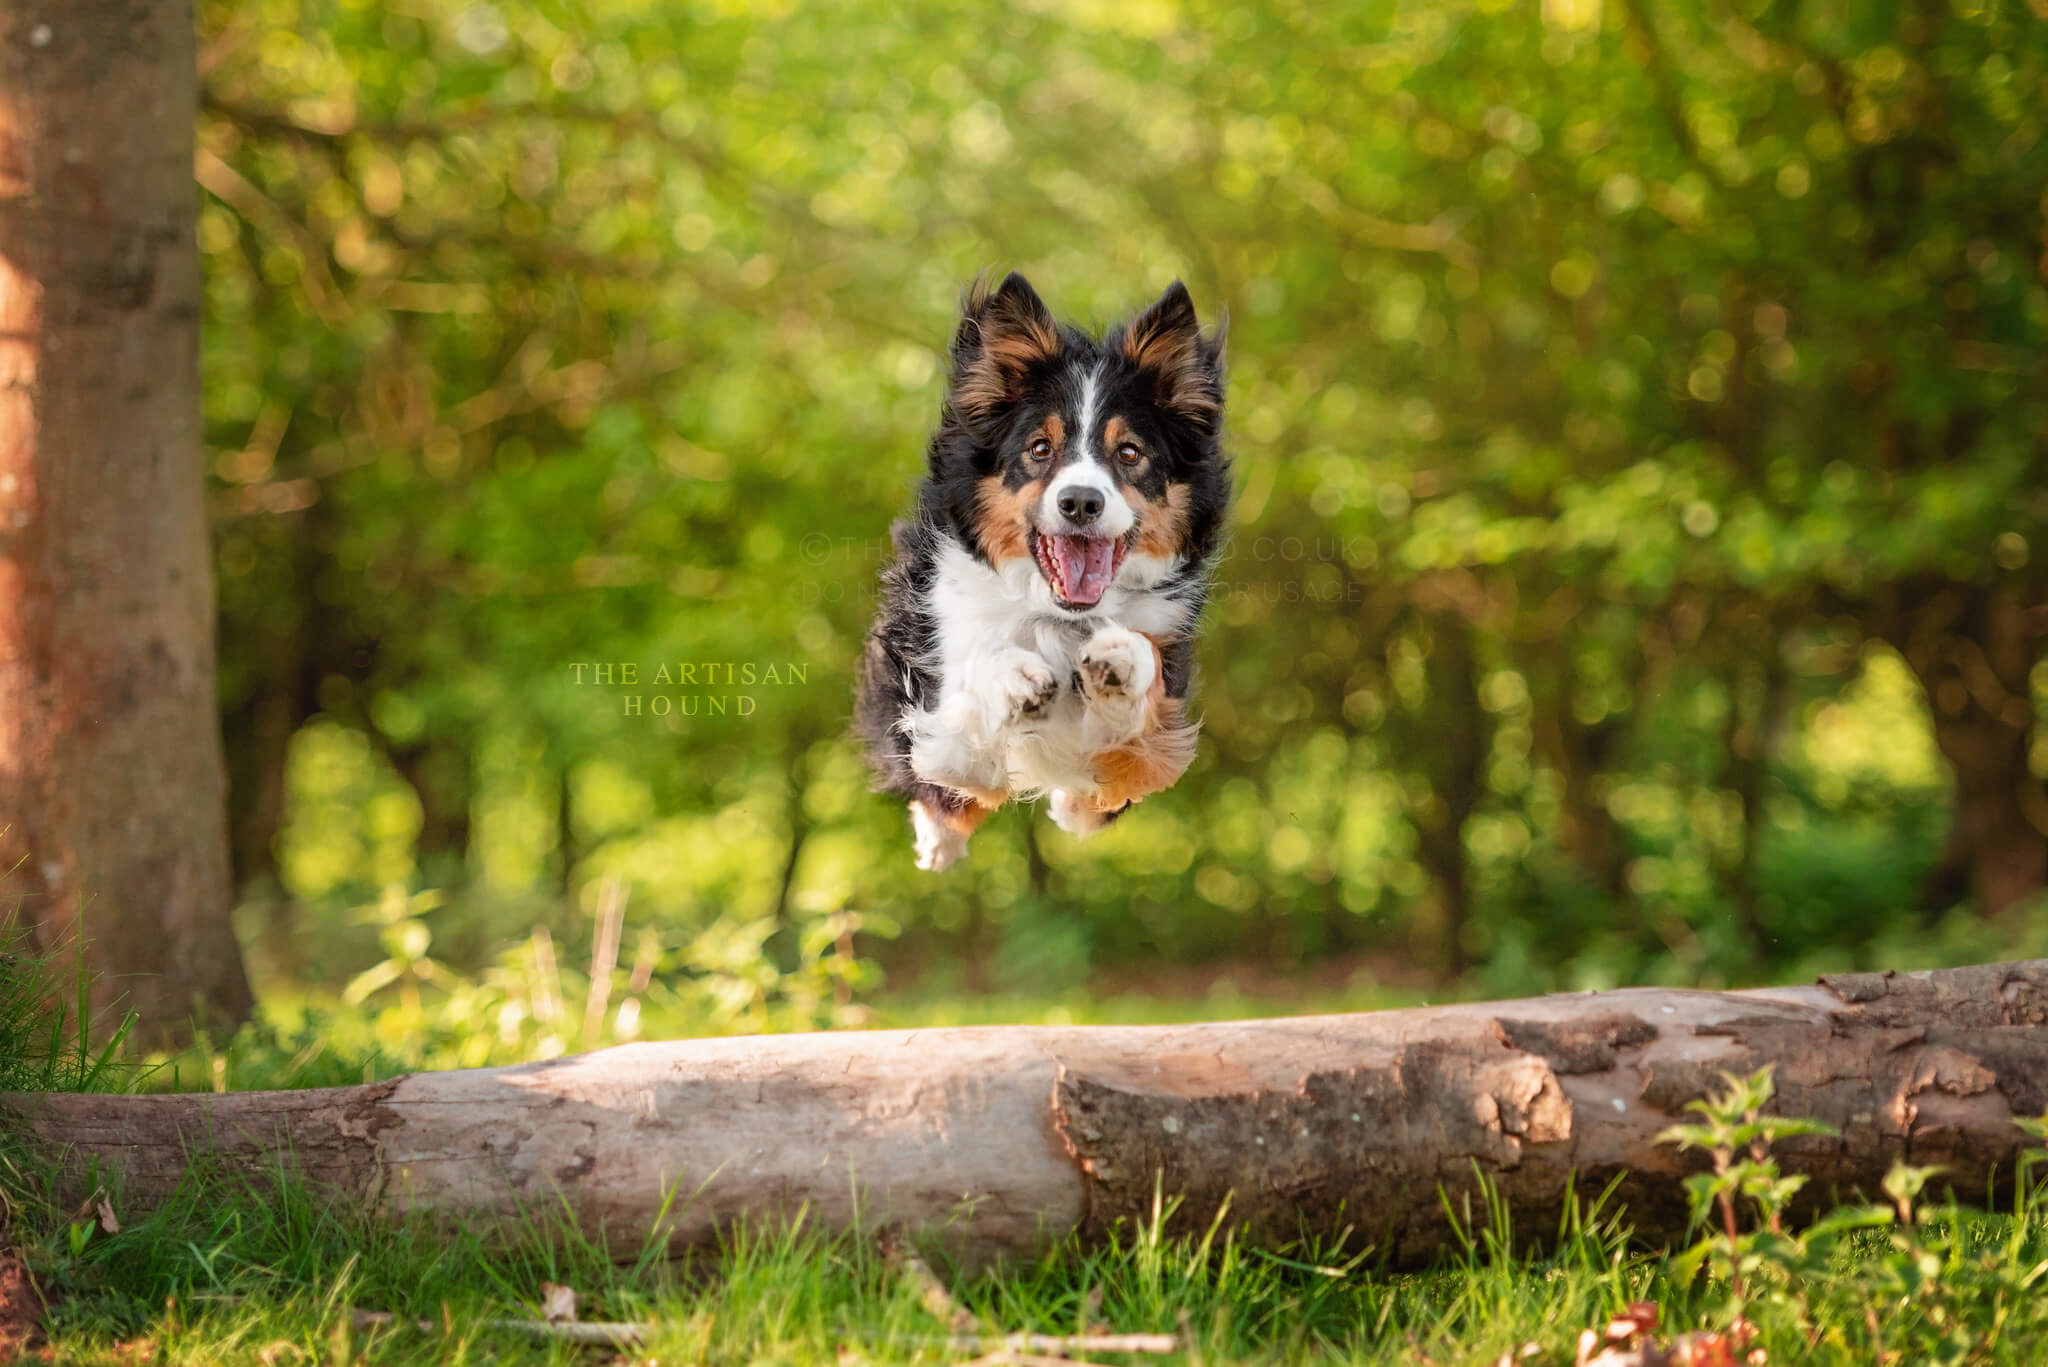 Border Collie dog leaping over log in Northampton park